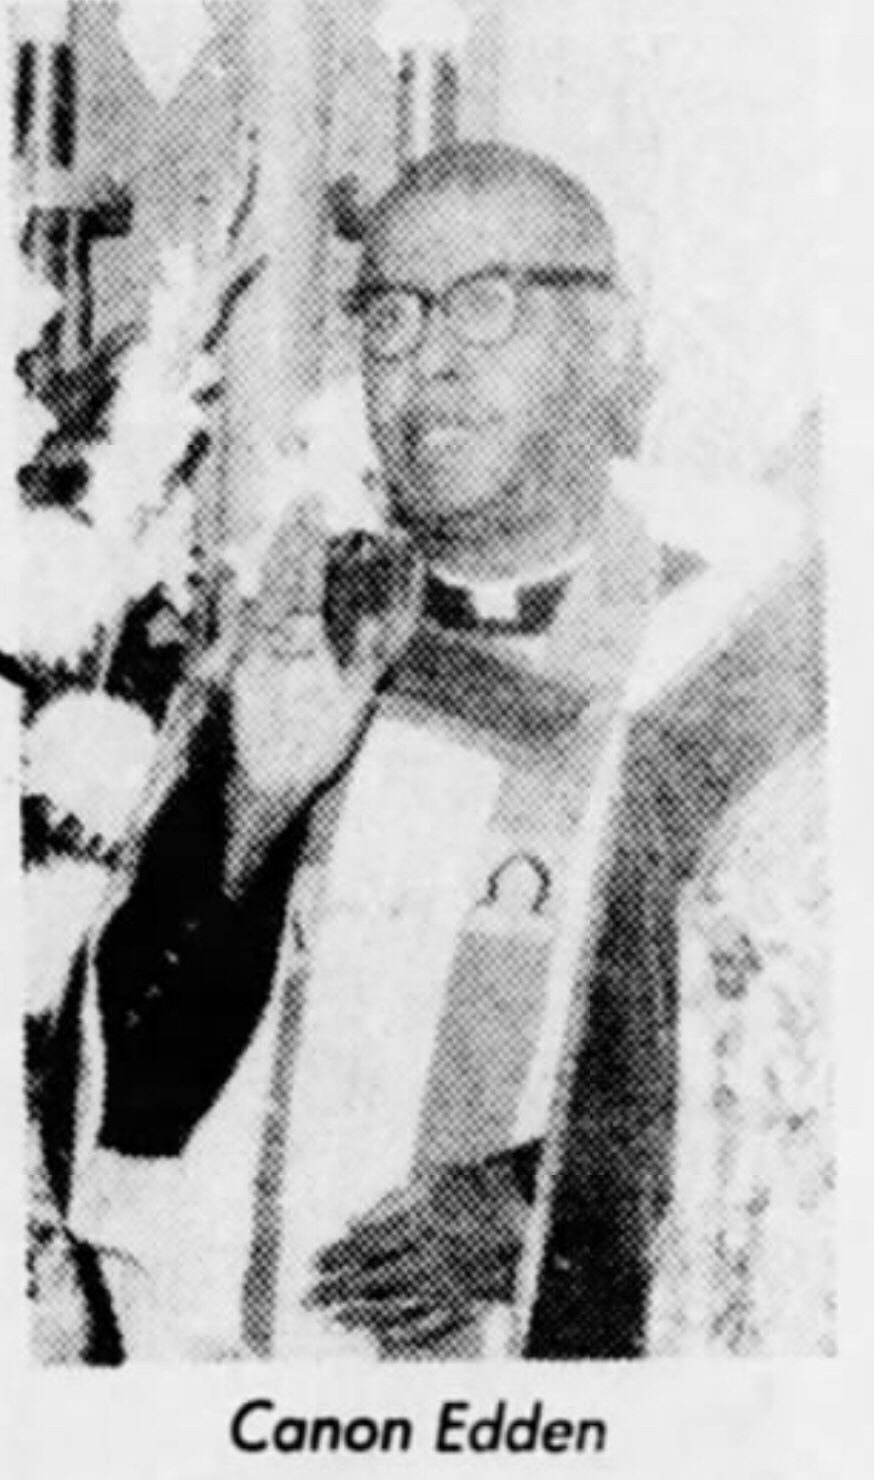 Rev. James A. Edden two bronze stars for valor WWII and Korean War 1960